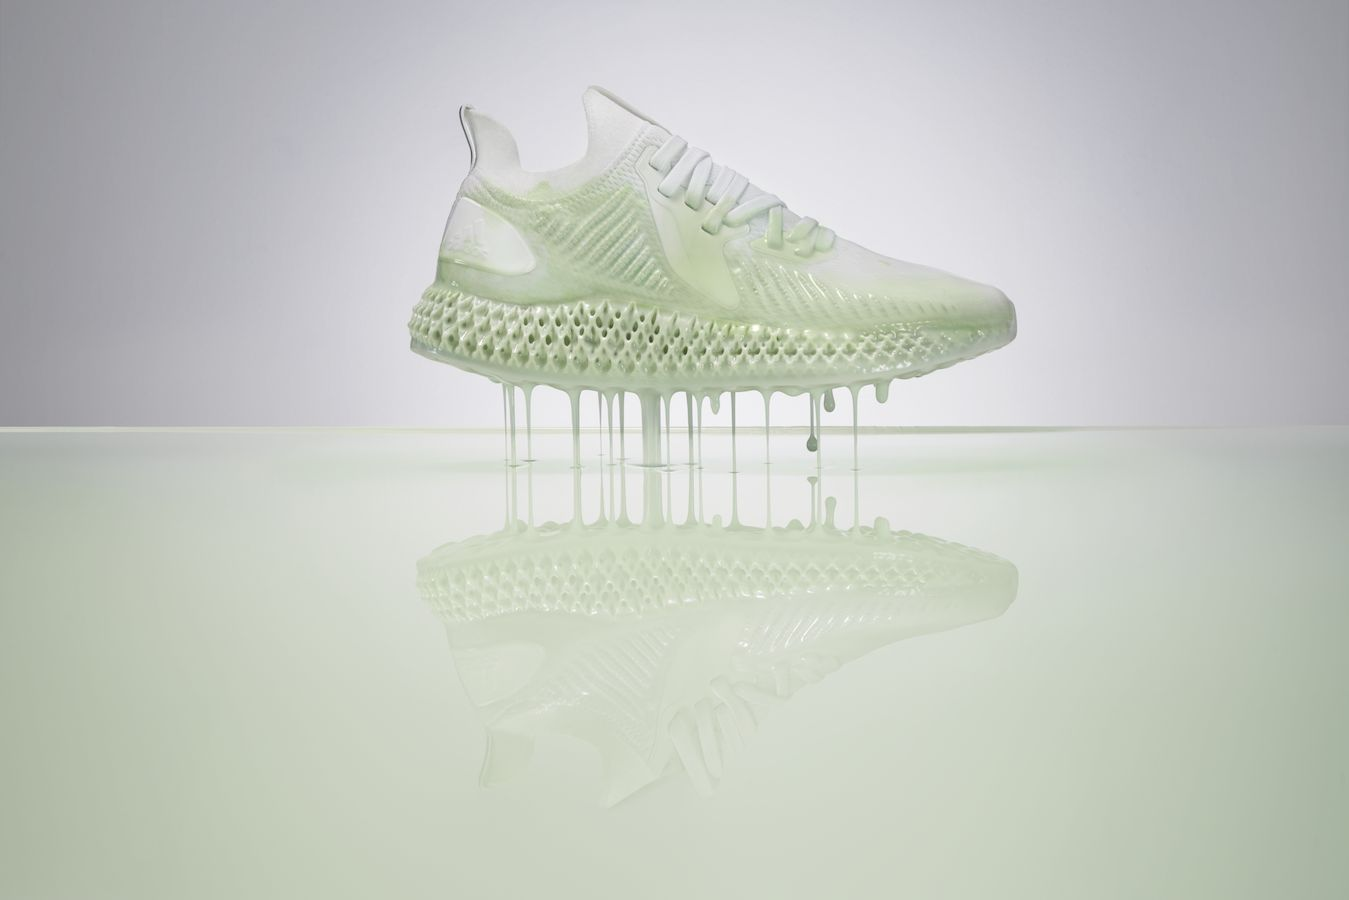 Here's a peek at the new Adidas Alphaedge 4D series